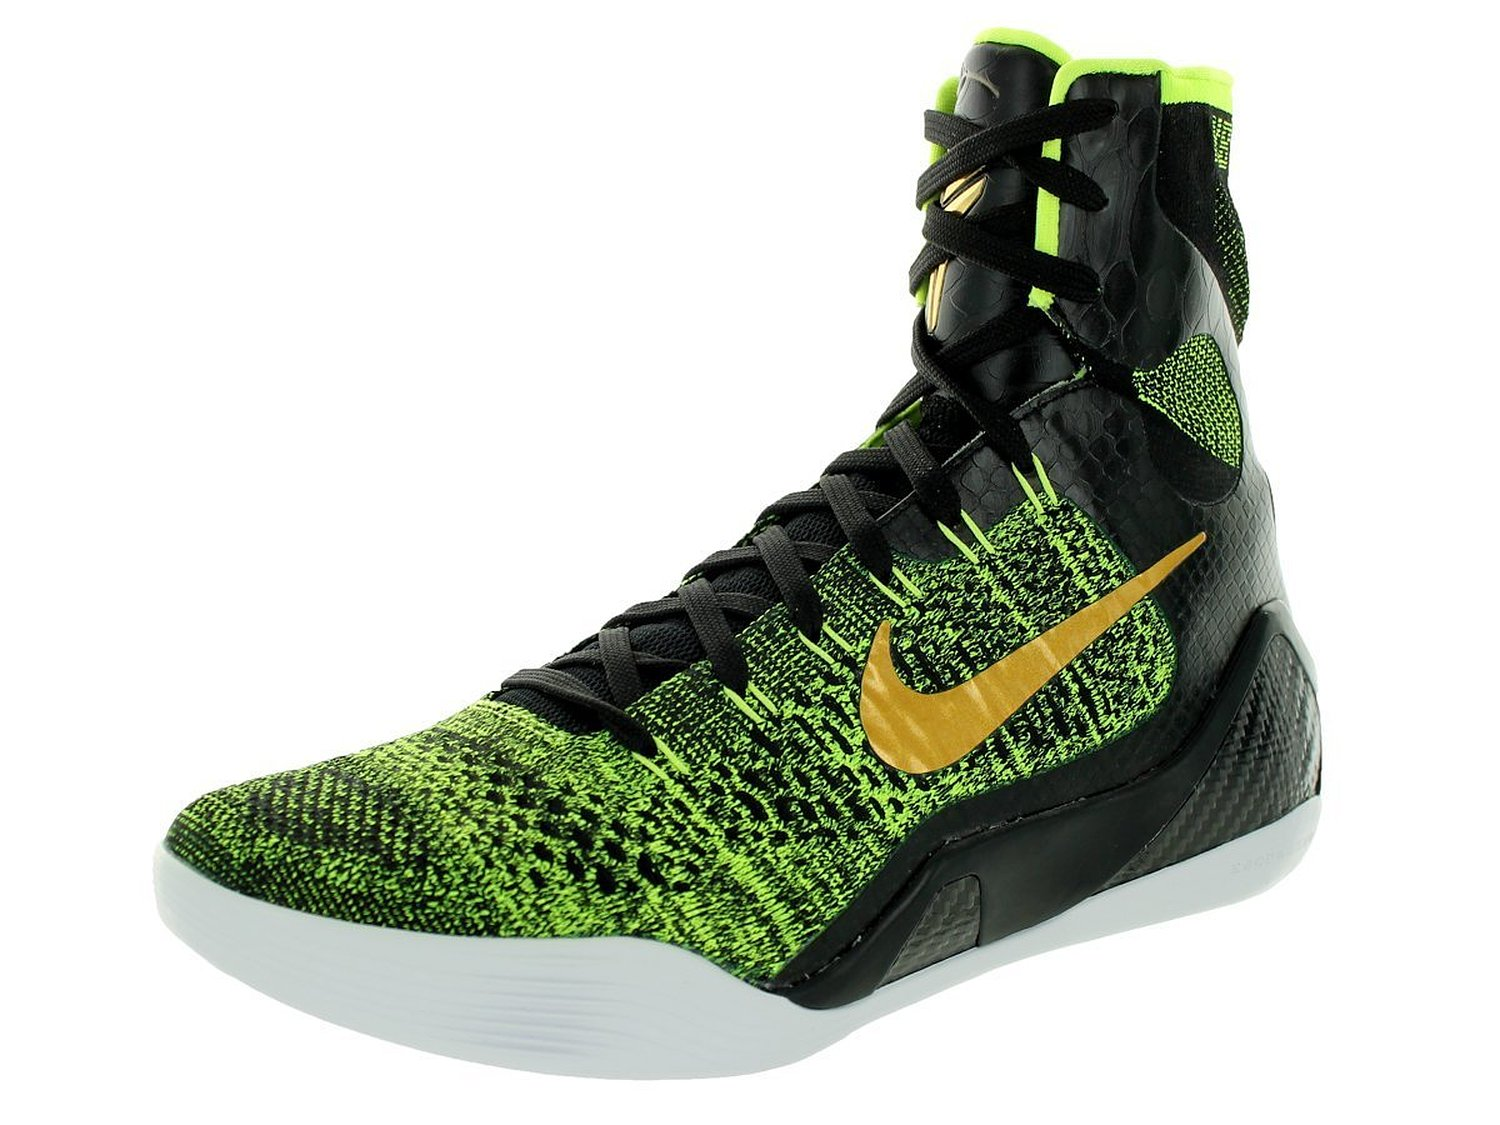 c41c81a2 Cheap Nike Kobe, find Nike Kobe deals on line at Alibaba.com